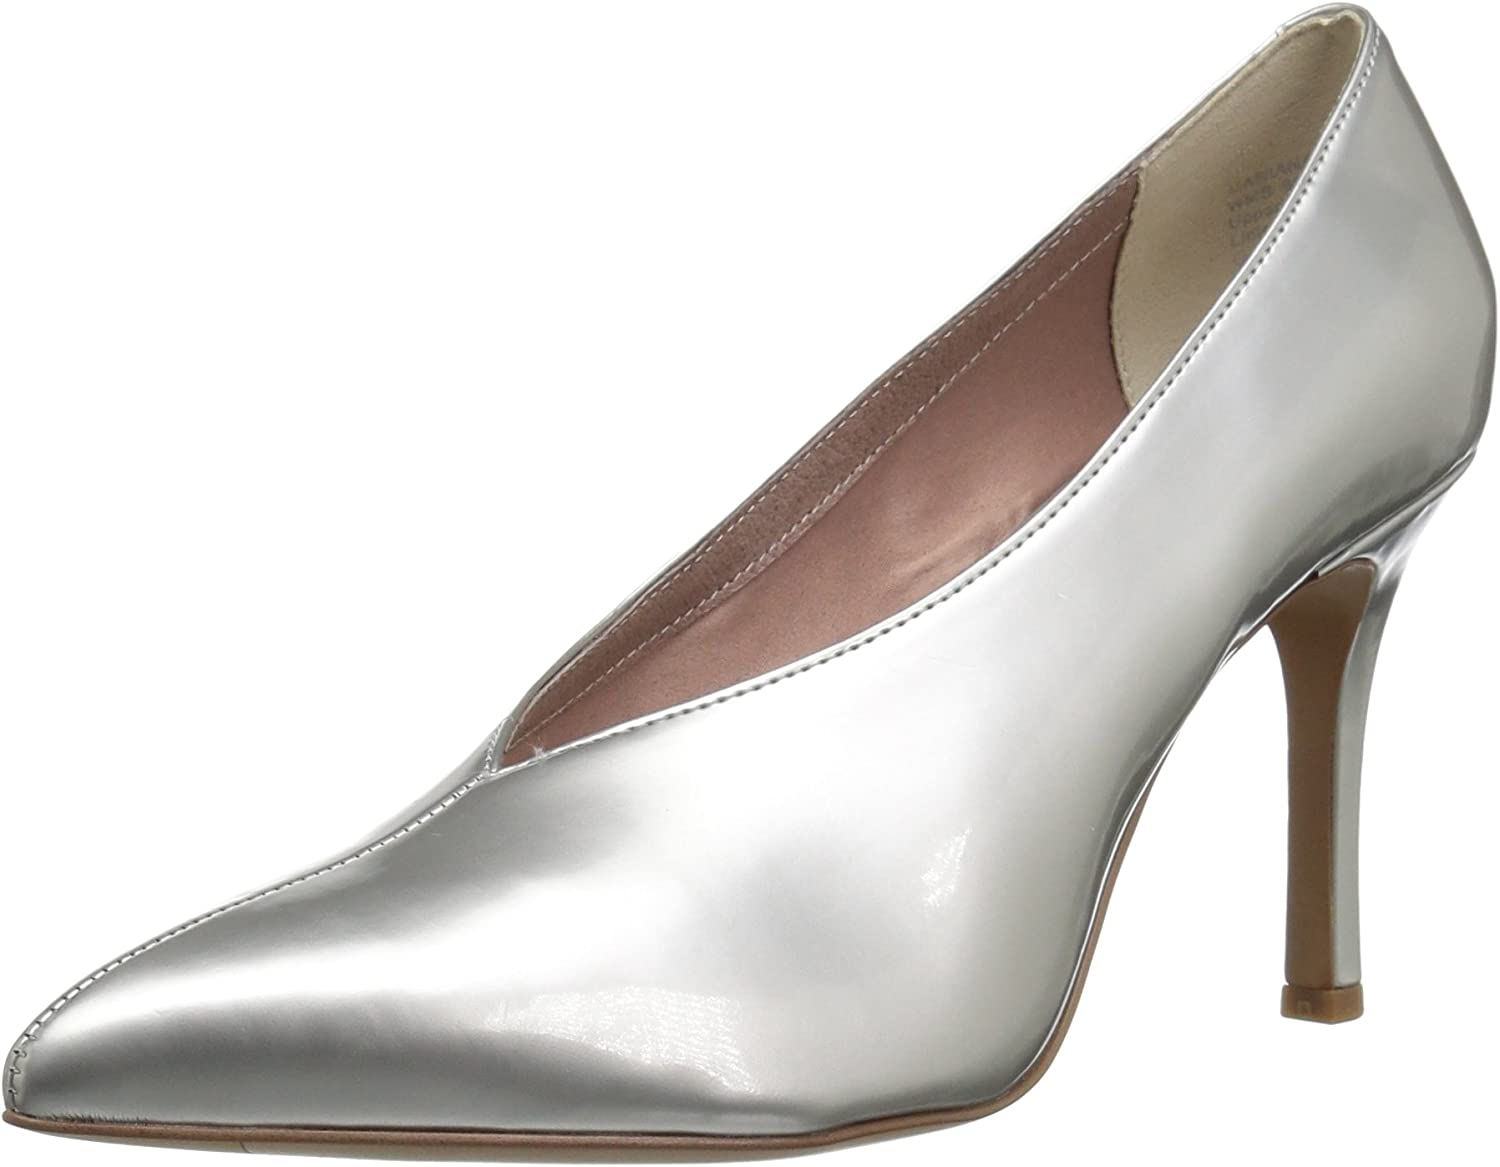 Kenneth Product Cole New York Women's famous Pump Dress Mariana Toe Pointy